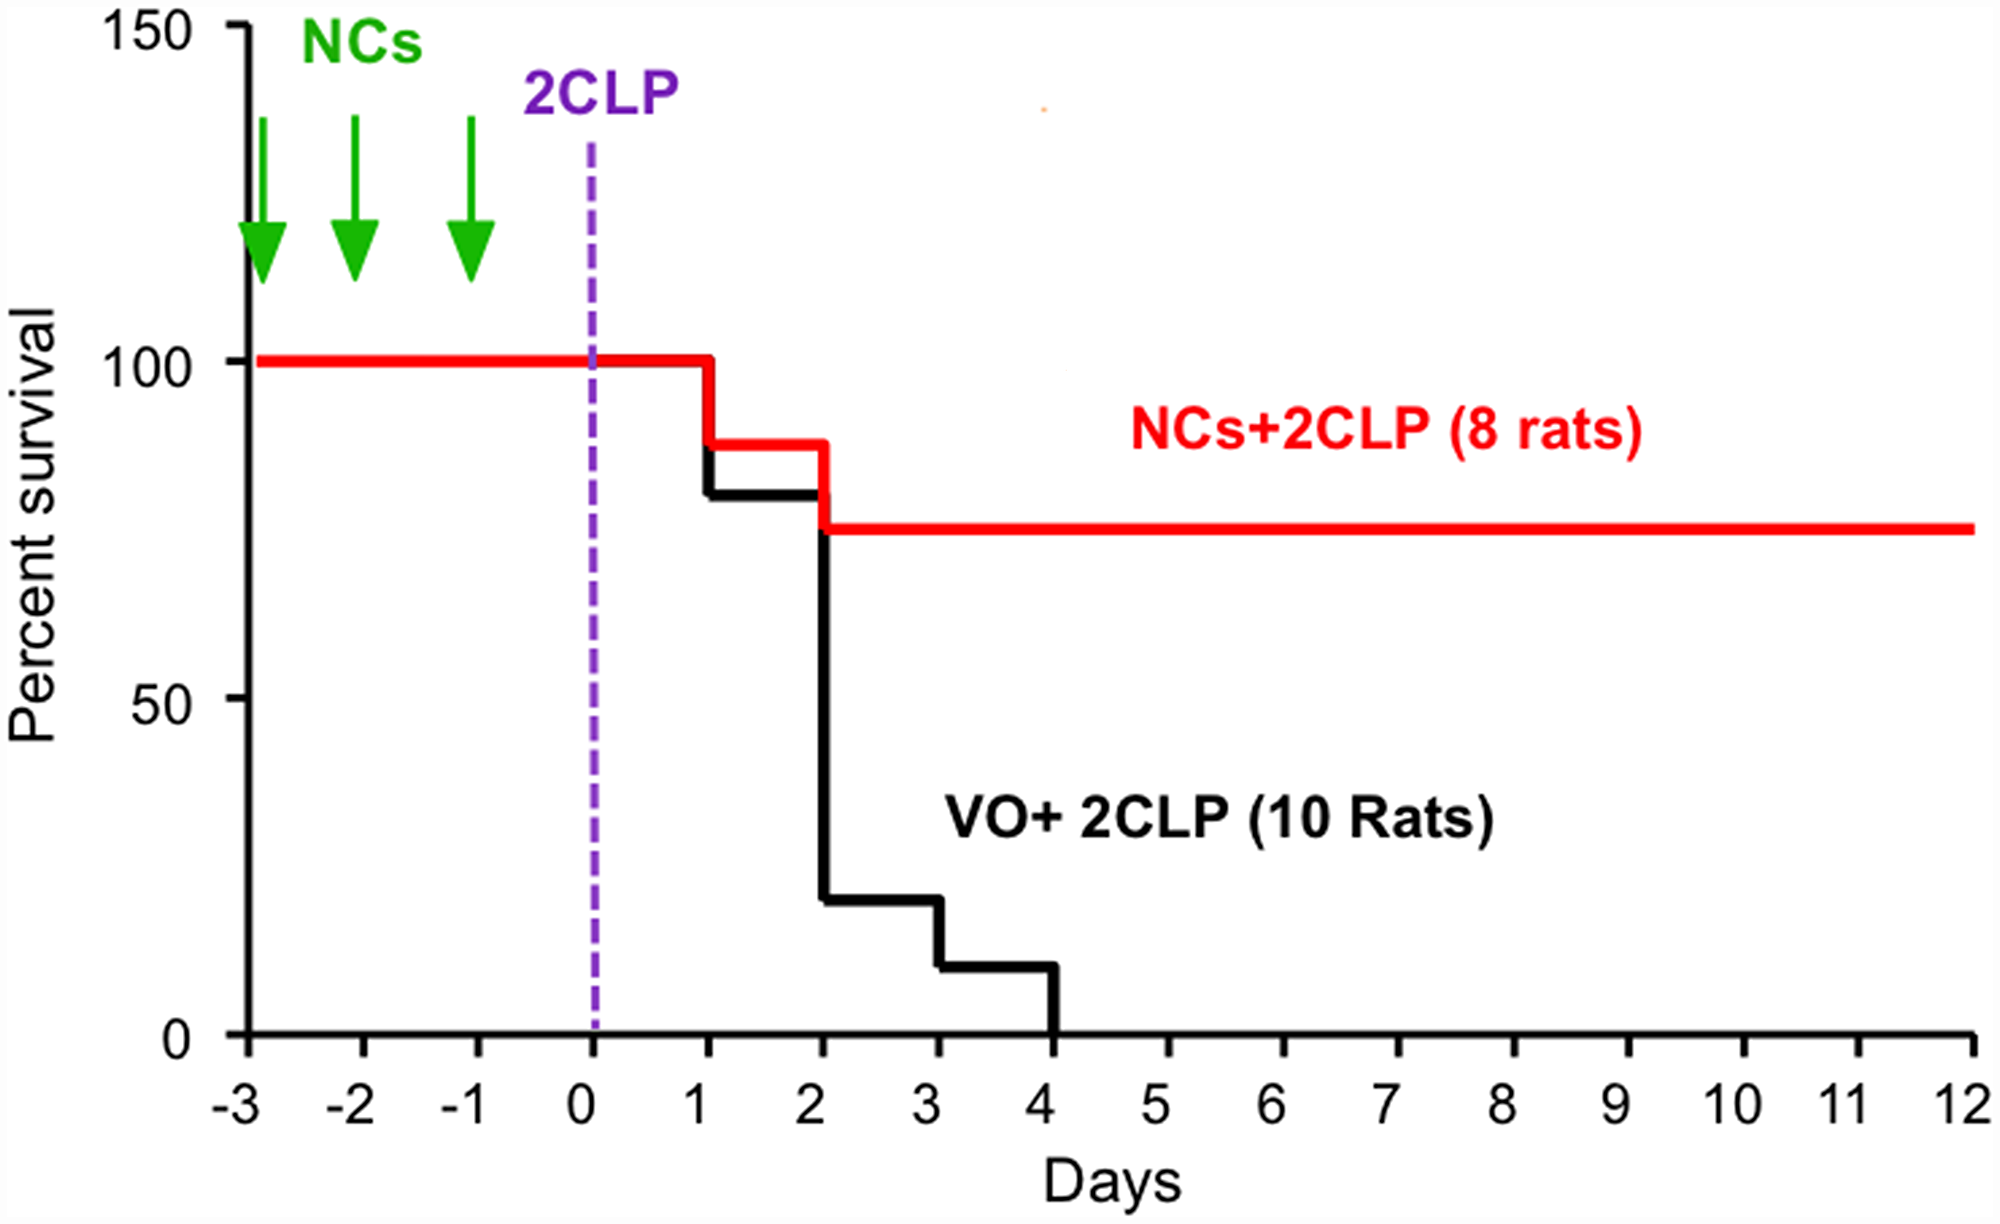 SV40 NCs significantly increase survival of septic rats.